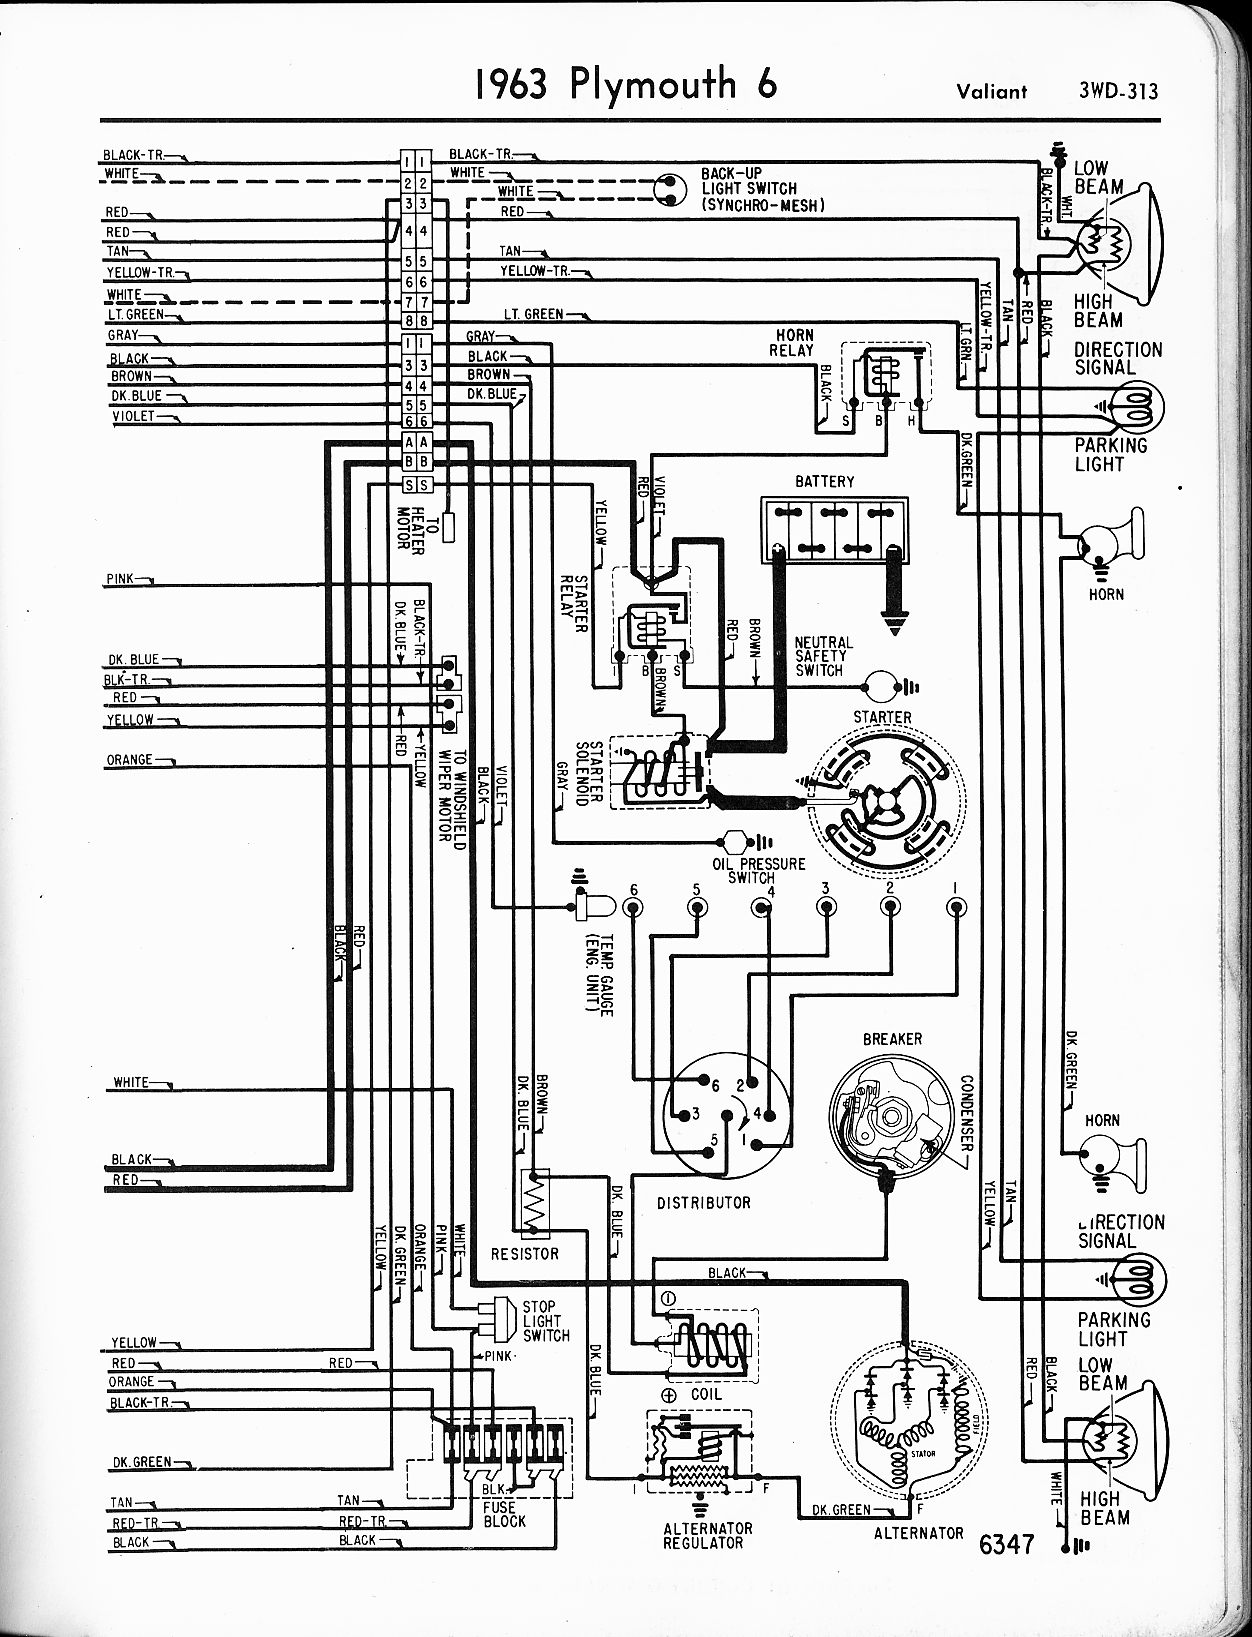 DIAGRAM] Plymouth Roadrunner Wiring Diagram FULL Version HD Quality Wiring  Diagram - DIAGRAMAEXPRESS.CONSERVATOIRE-CHANTERIE.FRdiagramaexpress.conservatoire-chanterie.fr